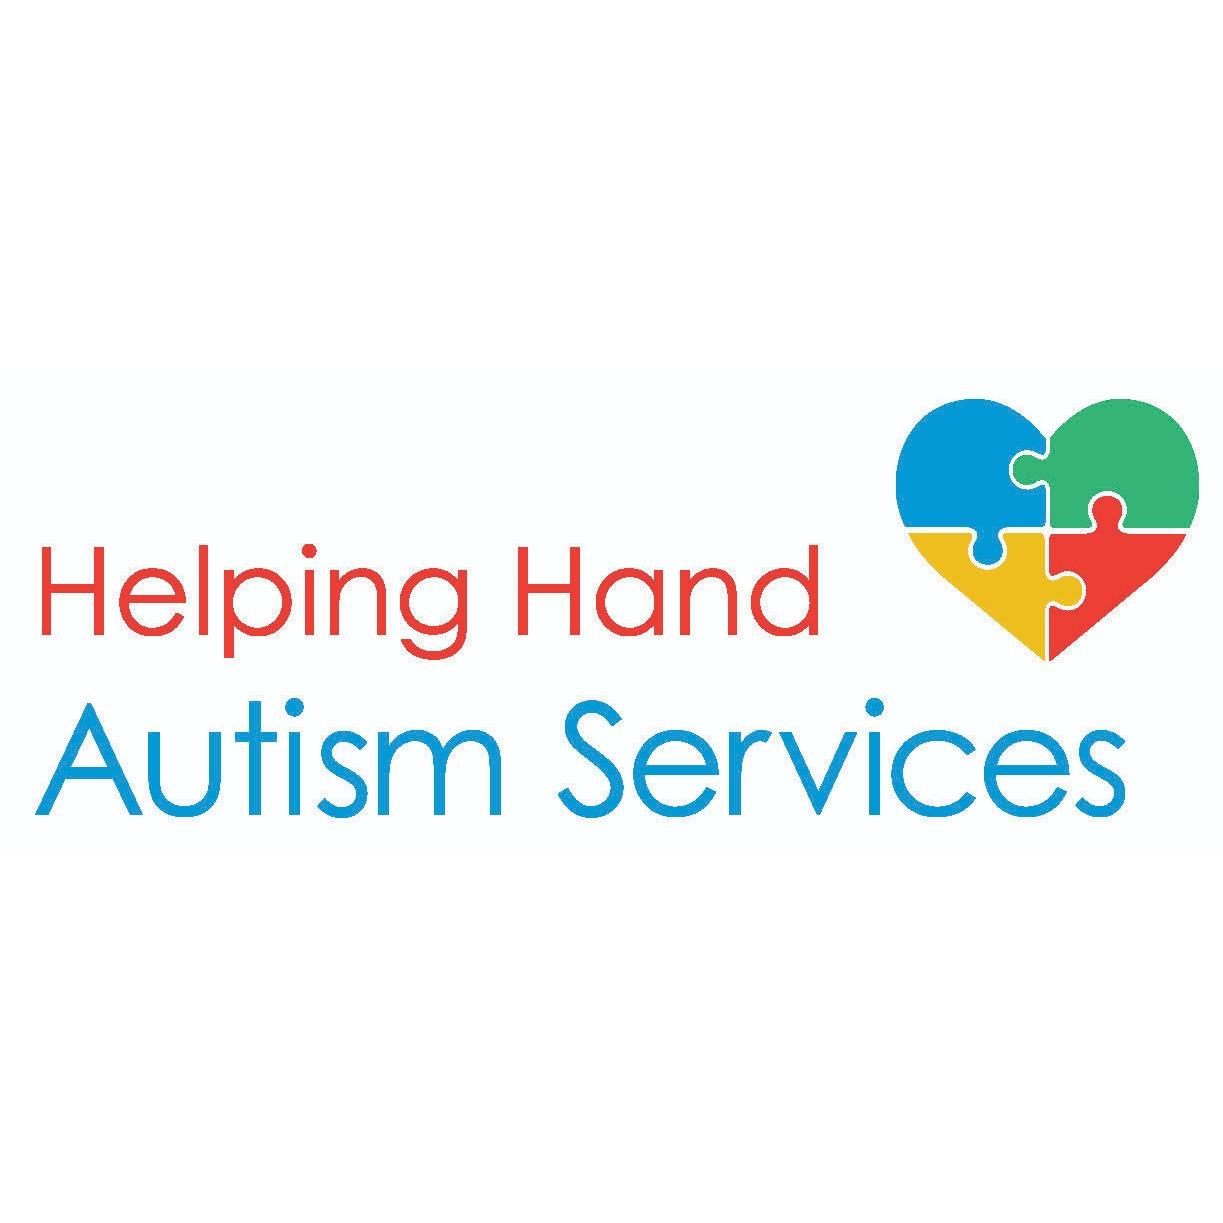 Helping Hand Autism Services